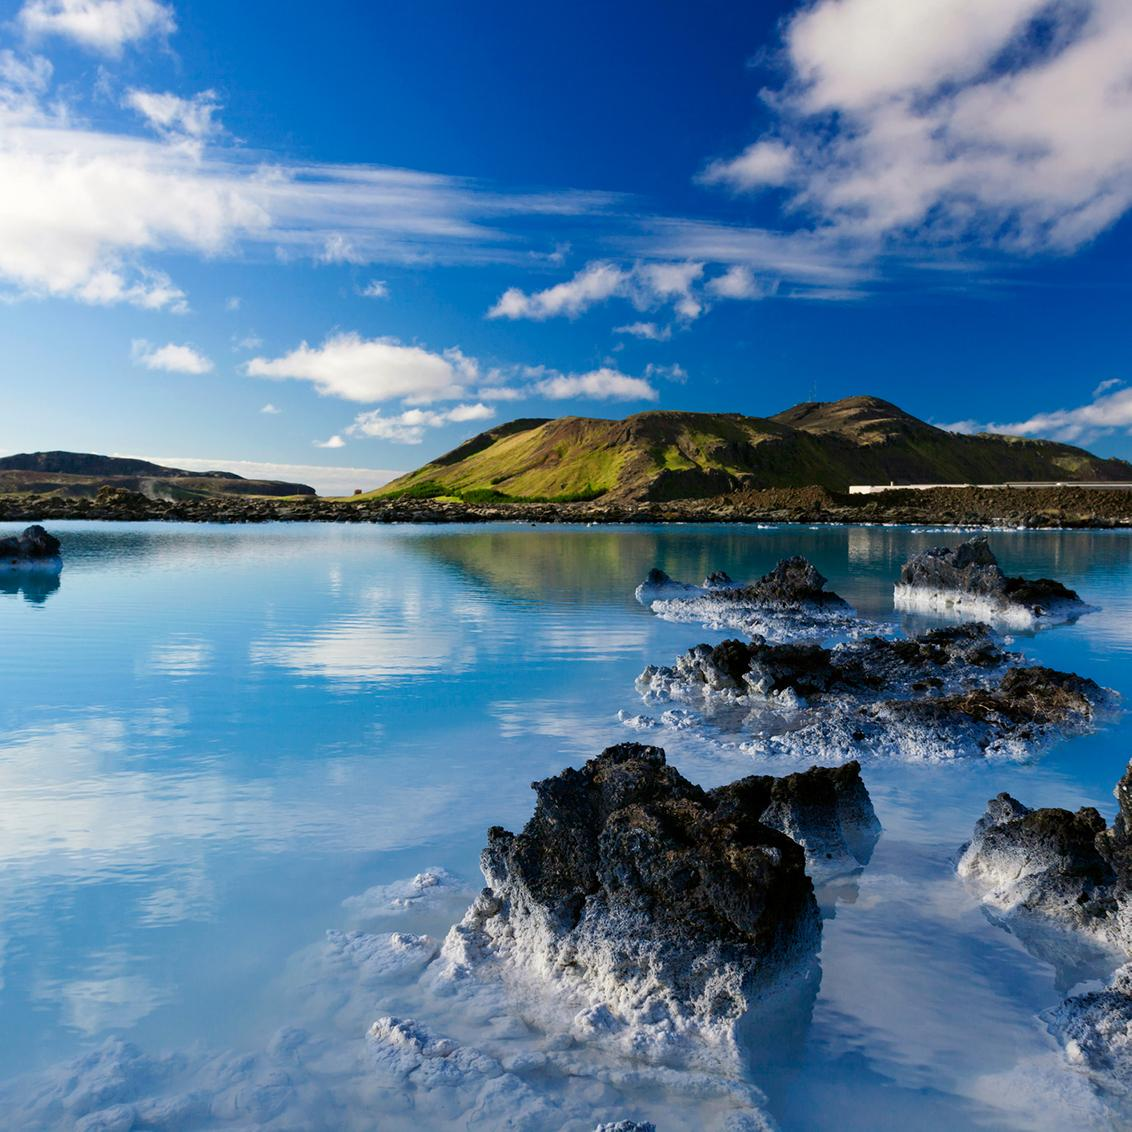 Glacial lakes and wilderness in Reykjavik Iceland